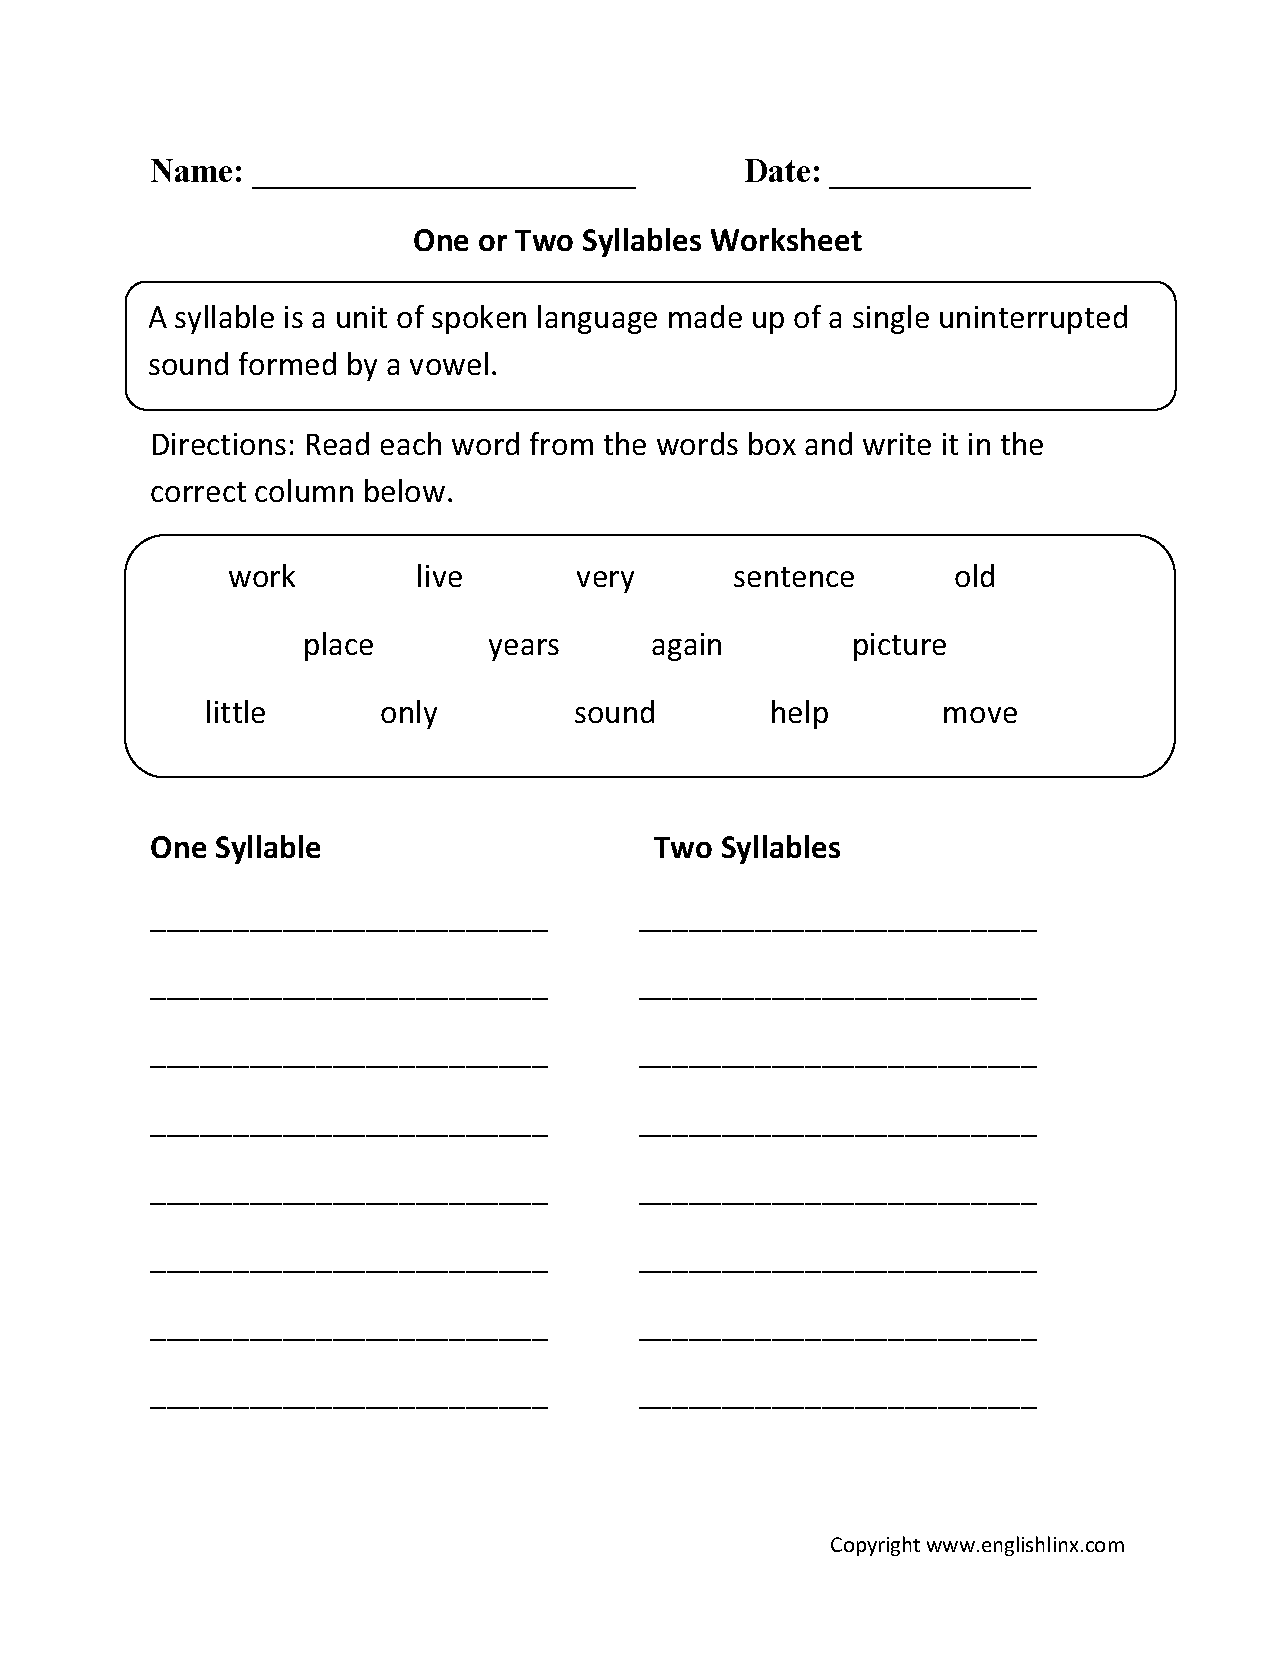 Worksheets Syllables Worksheets englishlinx com syllables worksheets worksheets